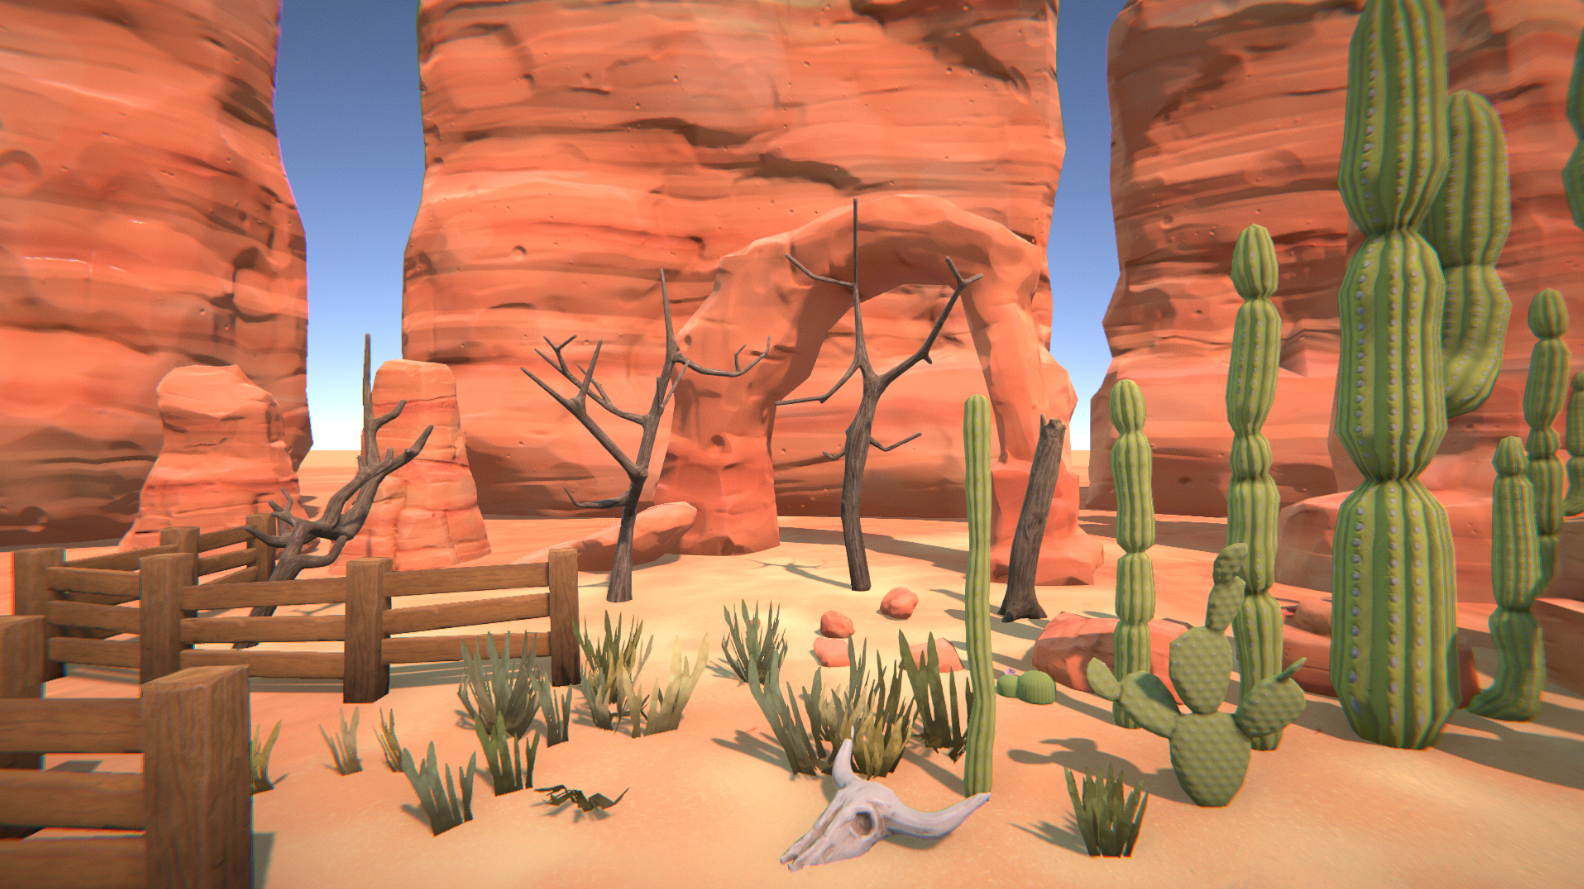 PBR Stylized/cartoon desert